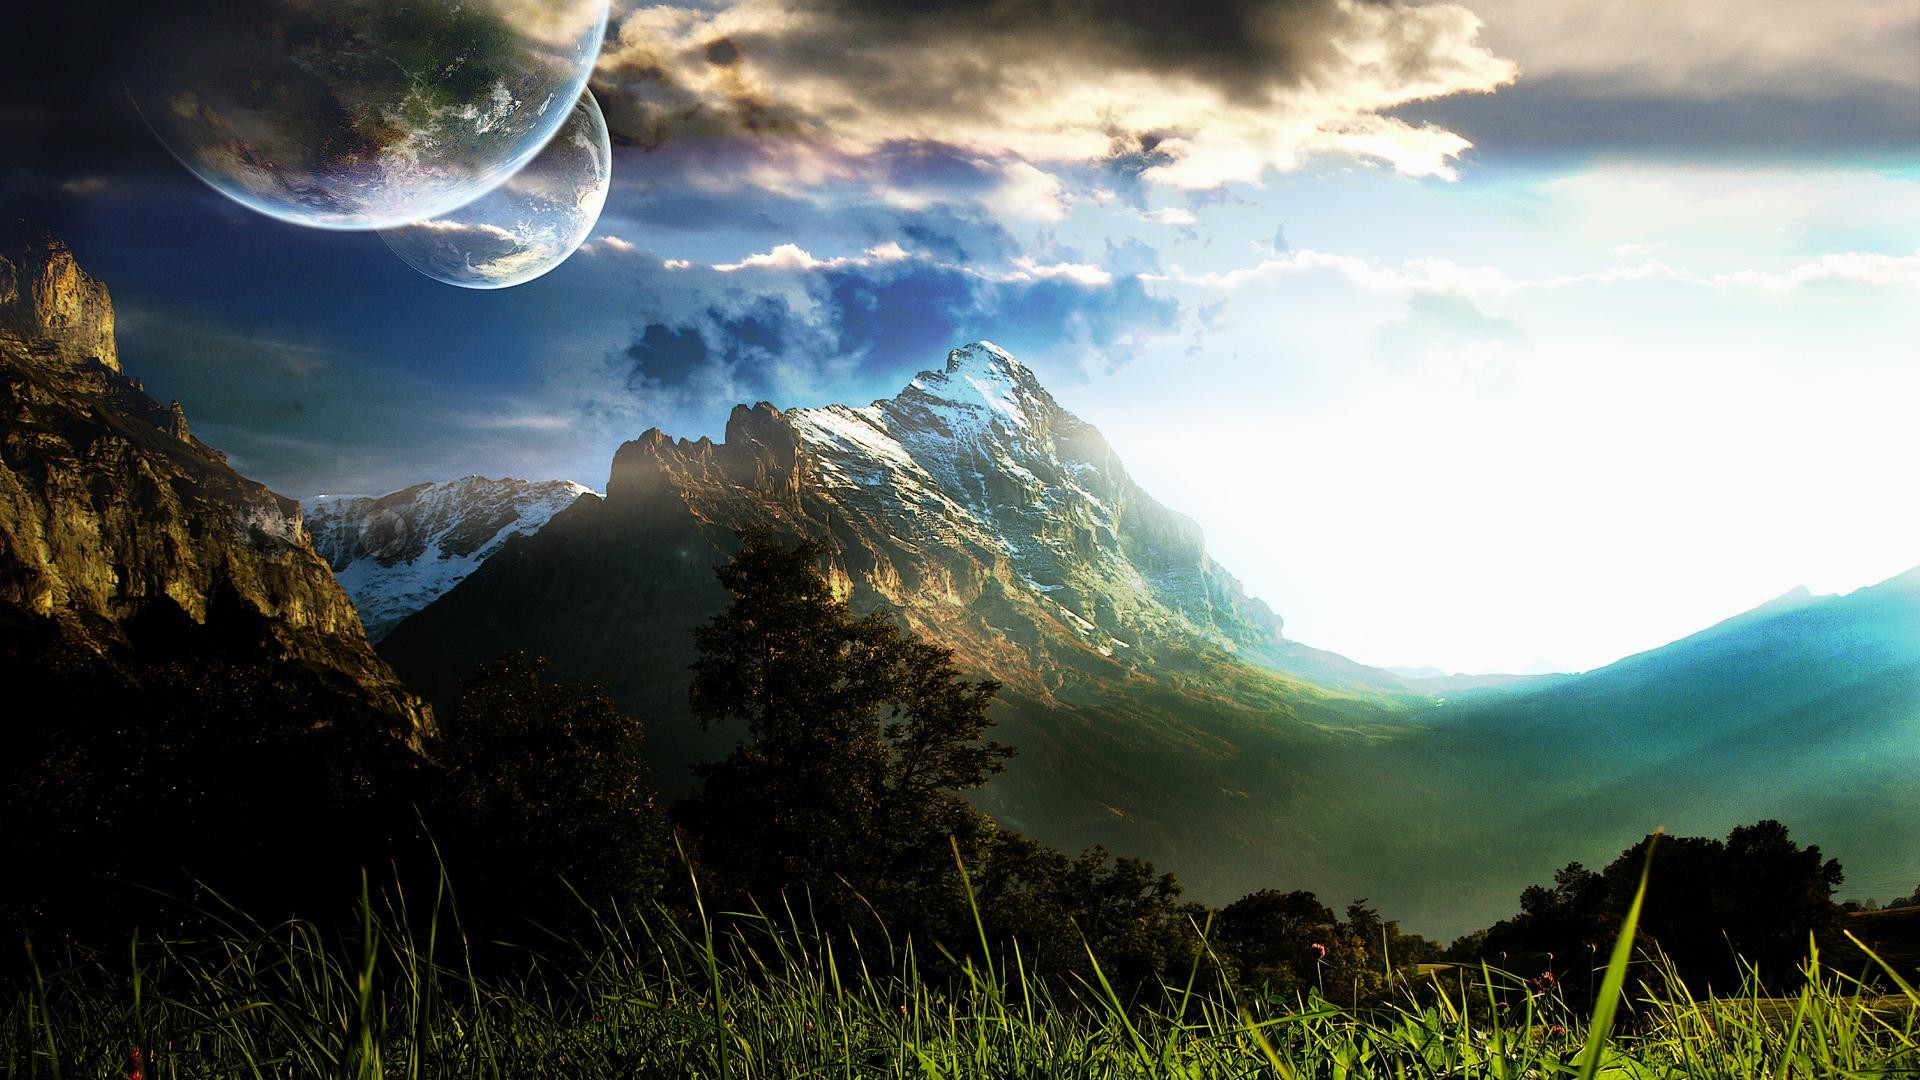 wallpaper.wiki-Sci-Fi-Images-Free-Download-PIC-